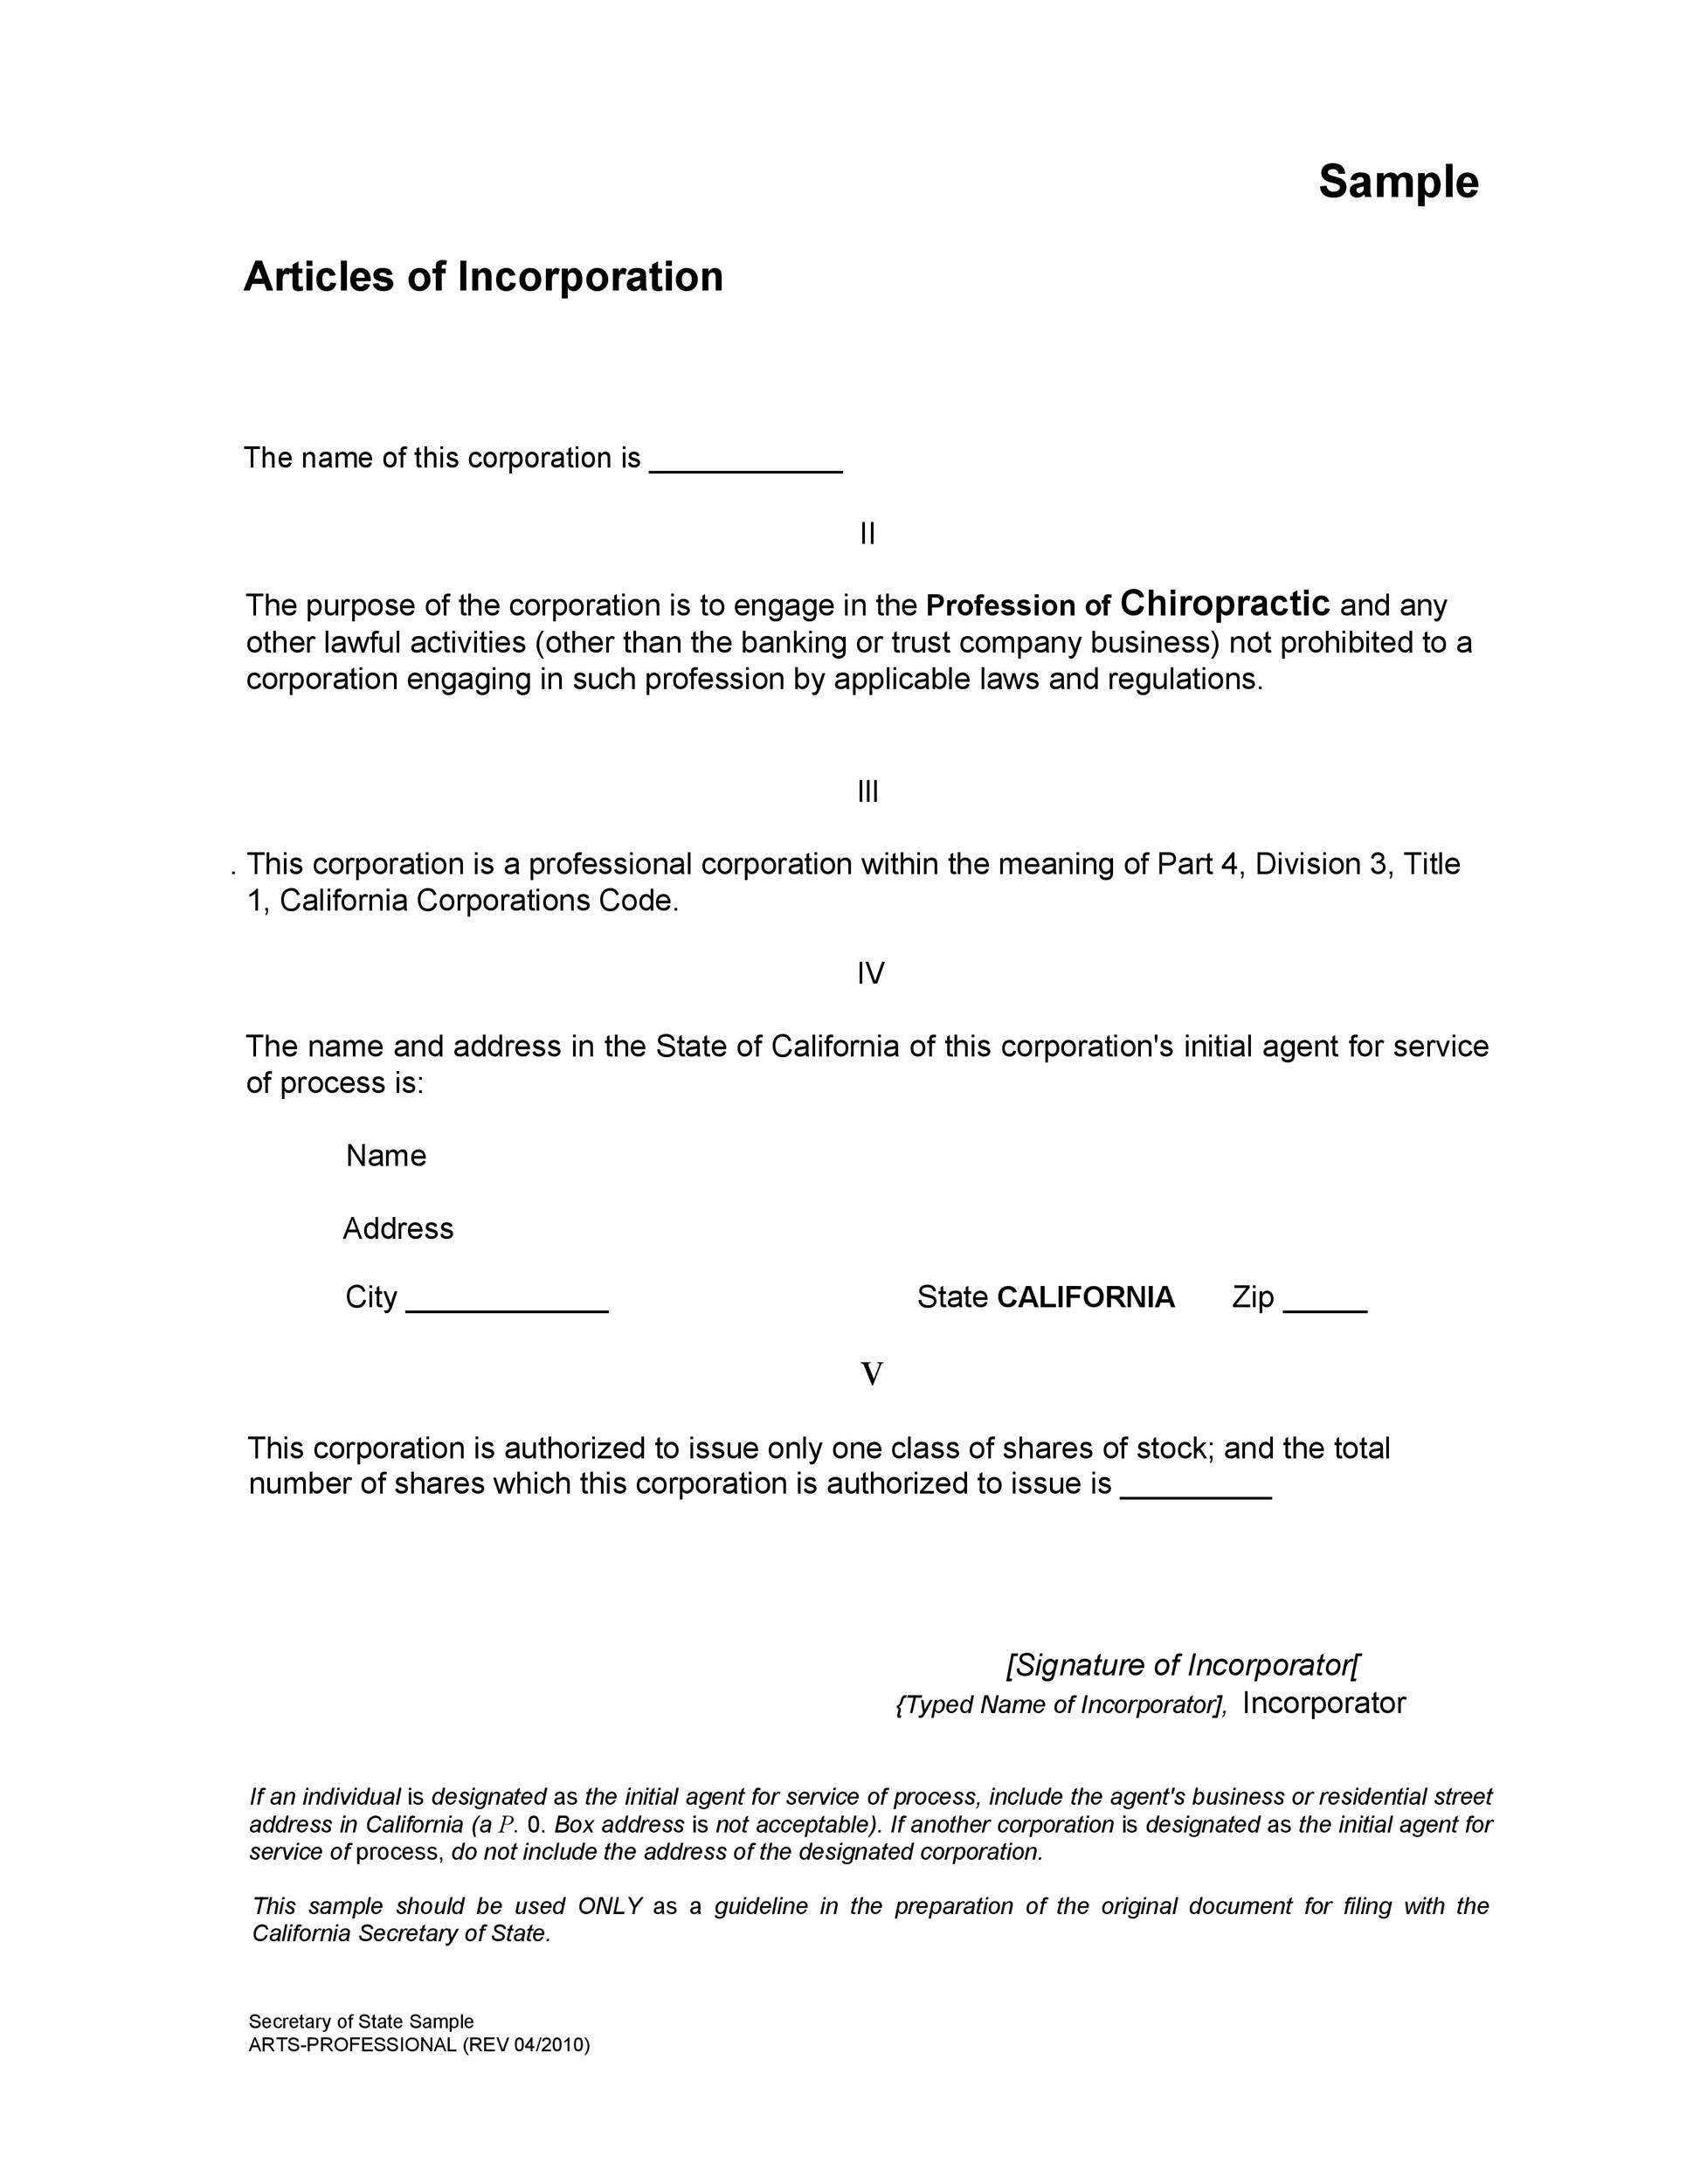 Free articles of incorporation template 42